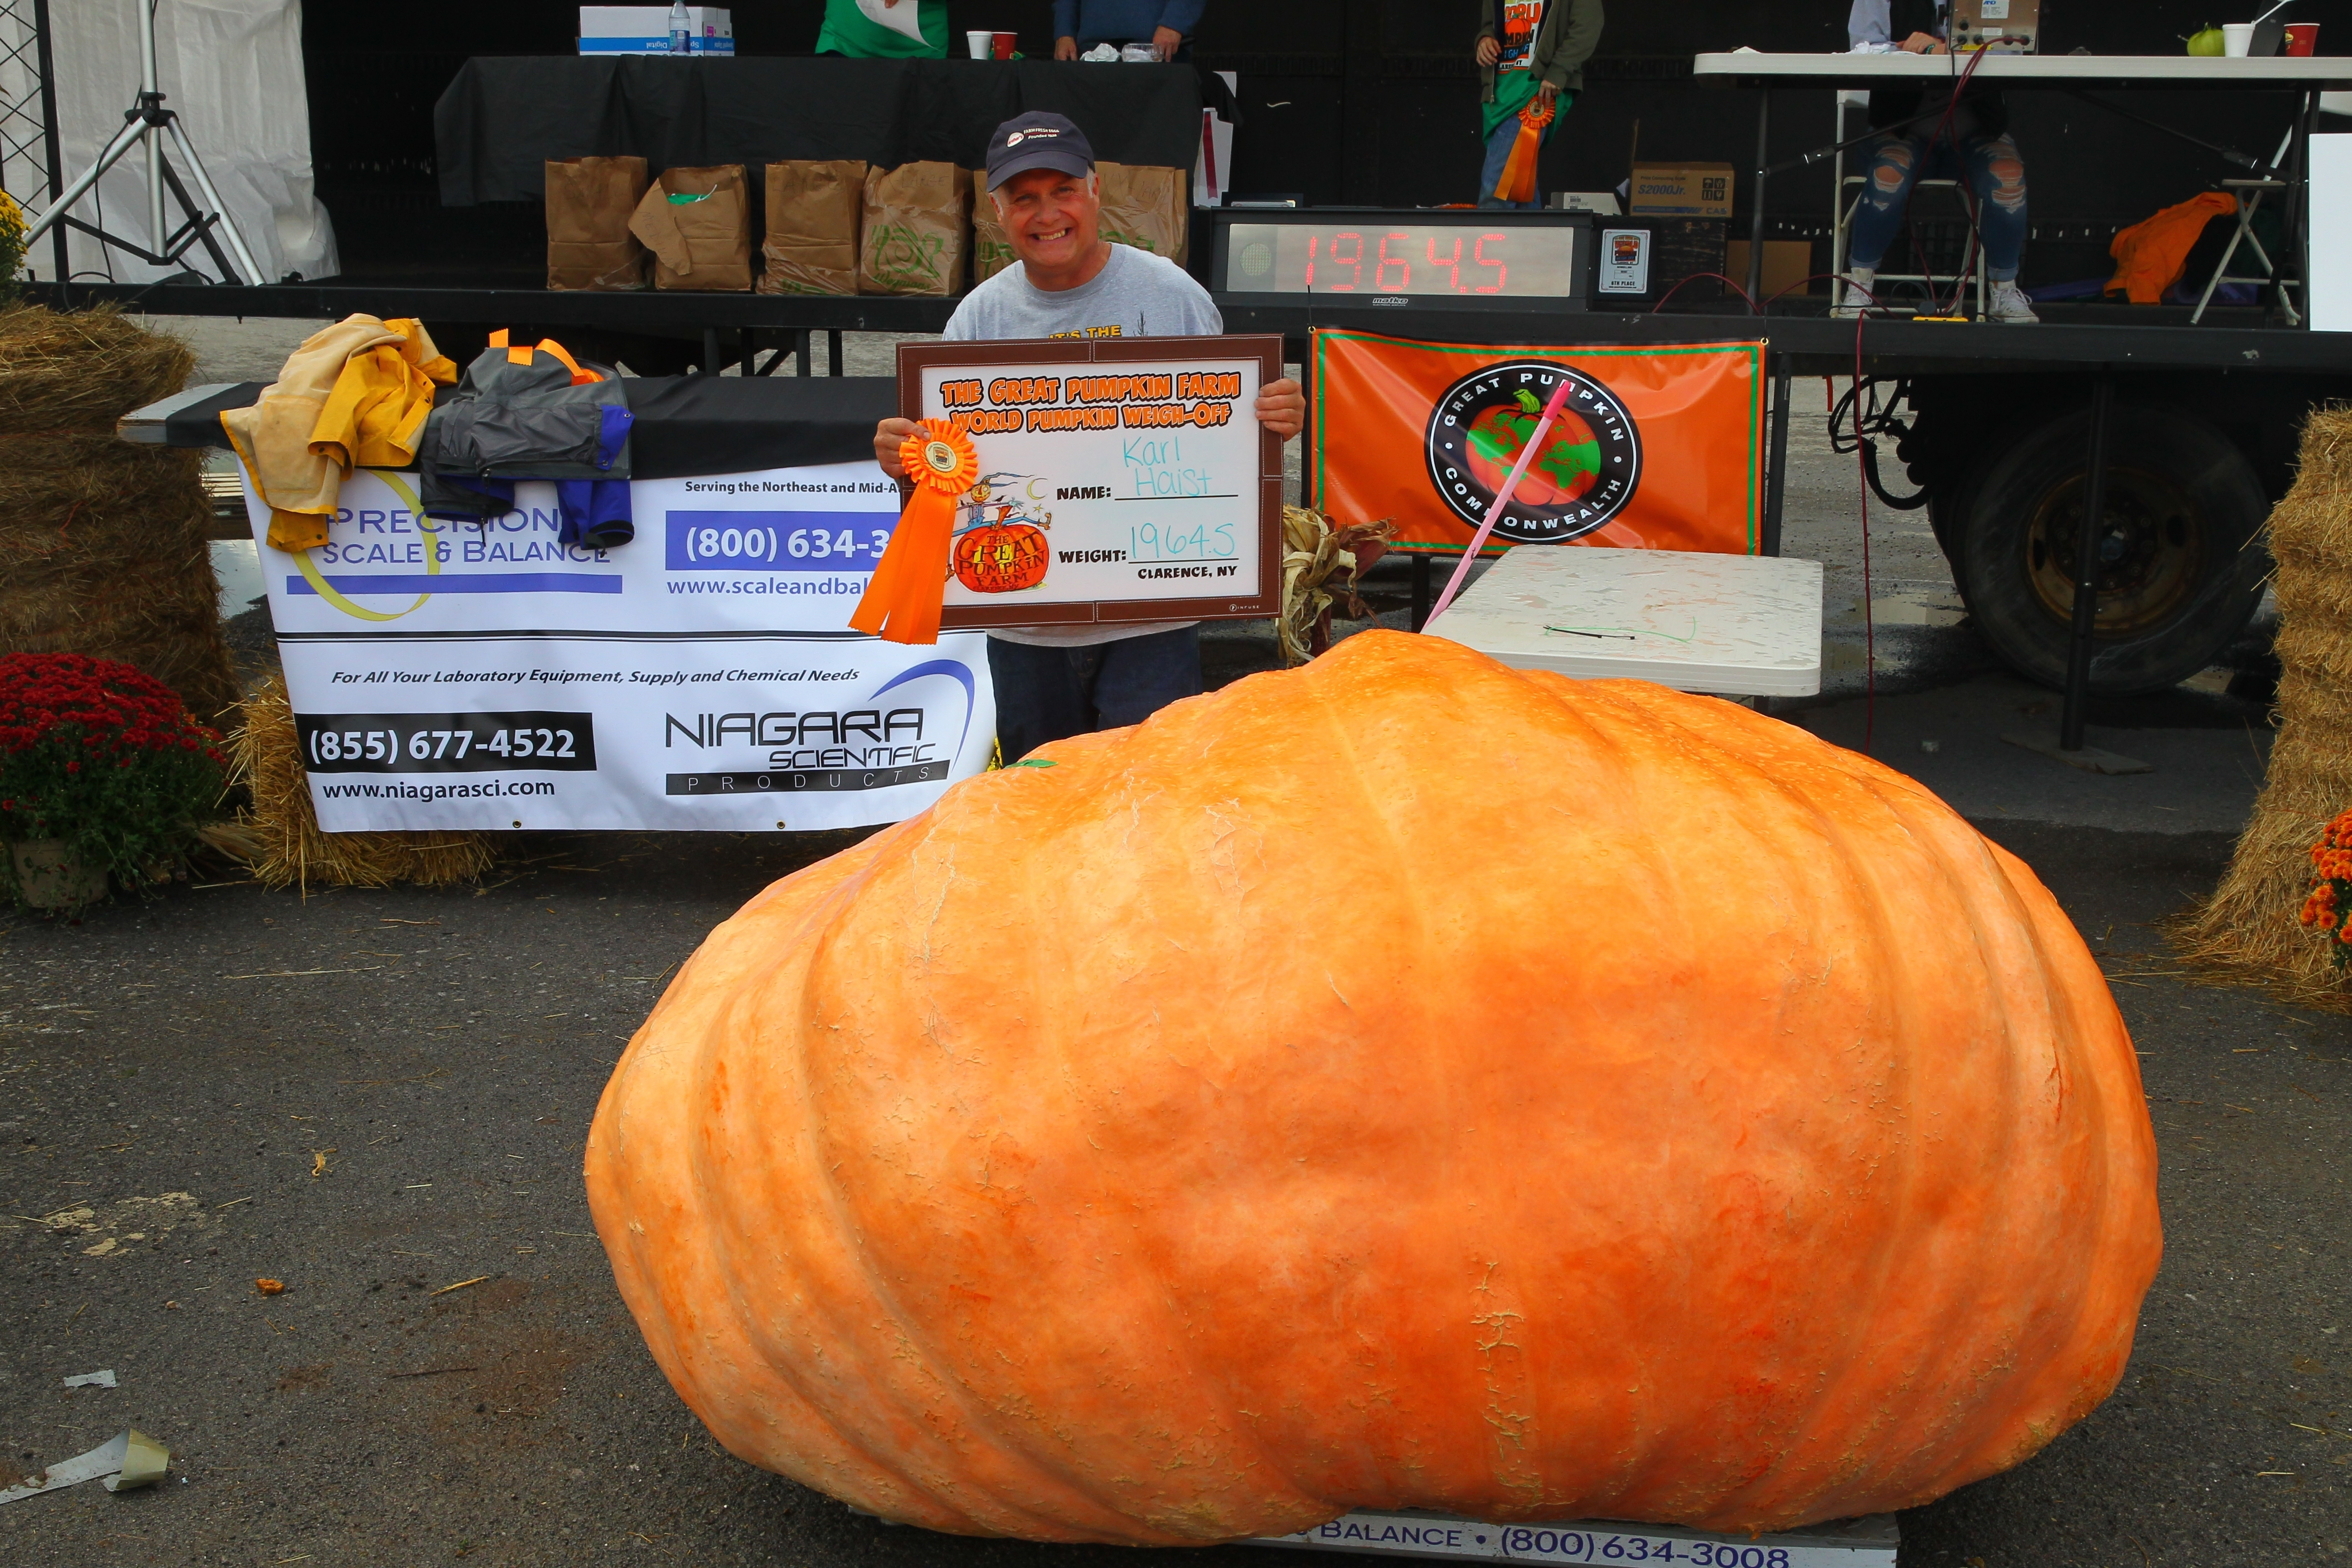 Karl Haist, of Clarence Center, and his pumpkin that weighed in at 1,964.5 pounds took him to a first place finish for the second year in a row at the 21st Annual Great Pumpkin Farm World Pumpkin Weigh-Off in Clarence on Sunday, Oct. 2, 2016. (John Hickey/Buffalo News)